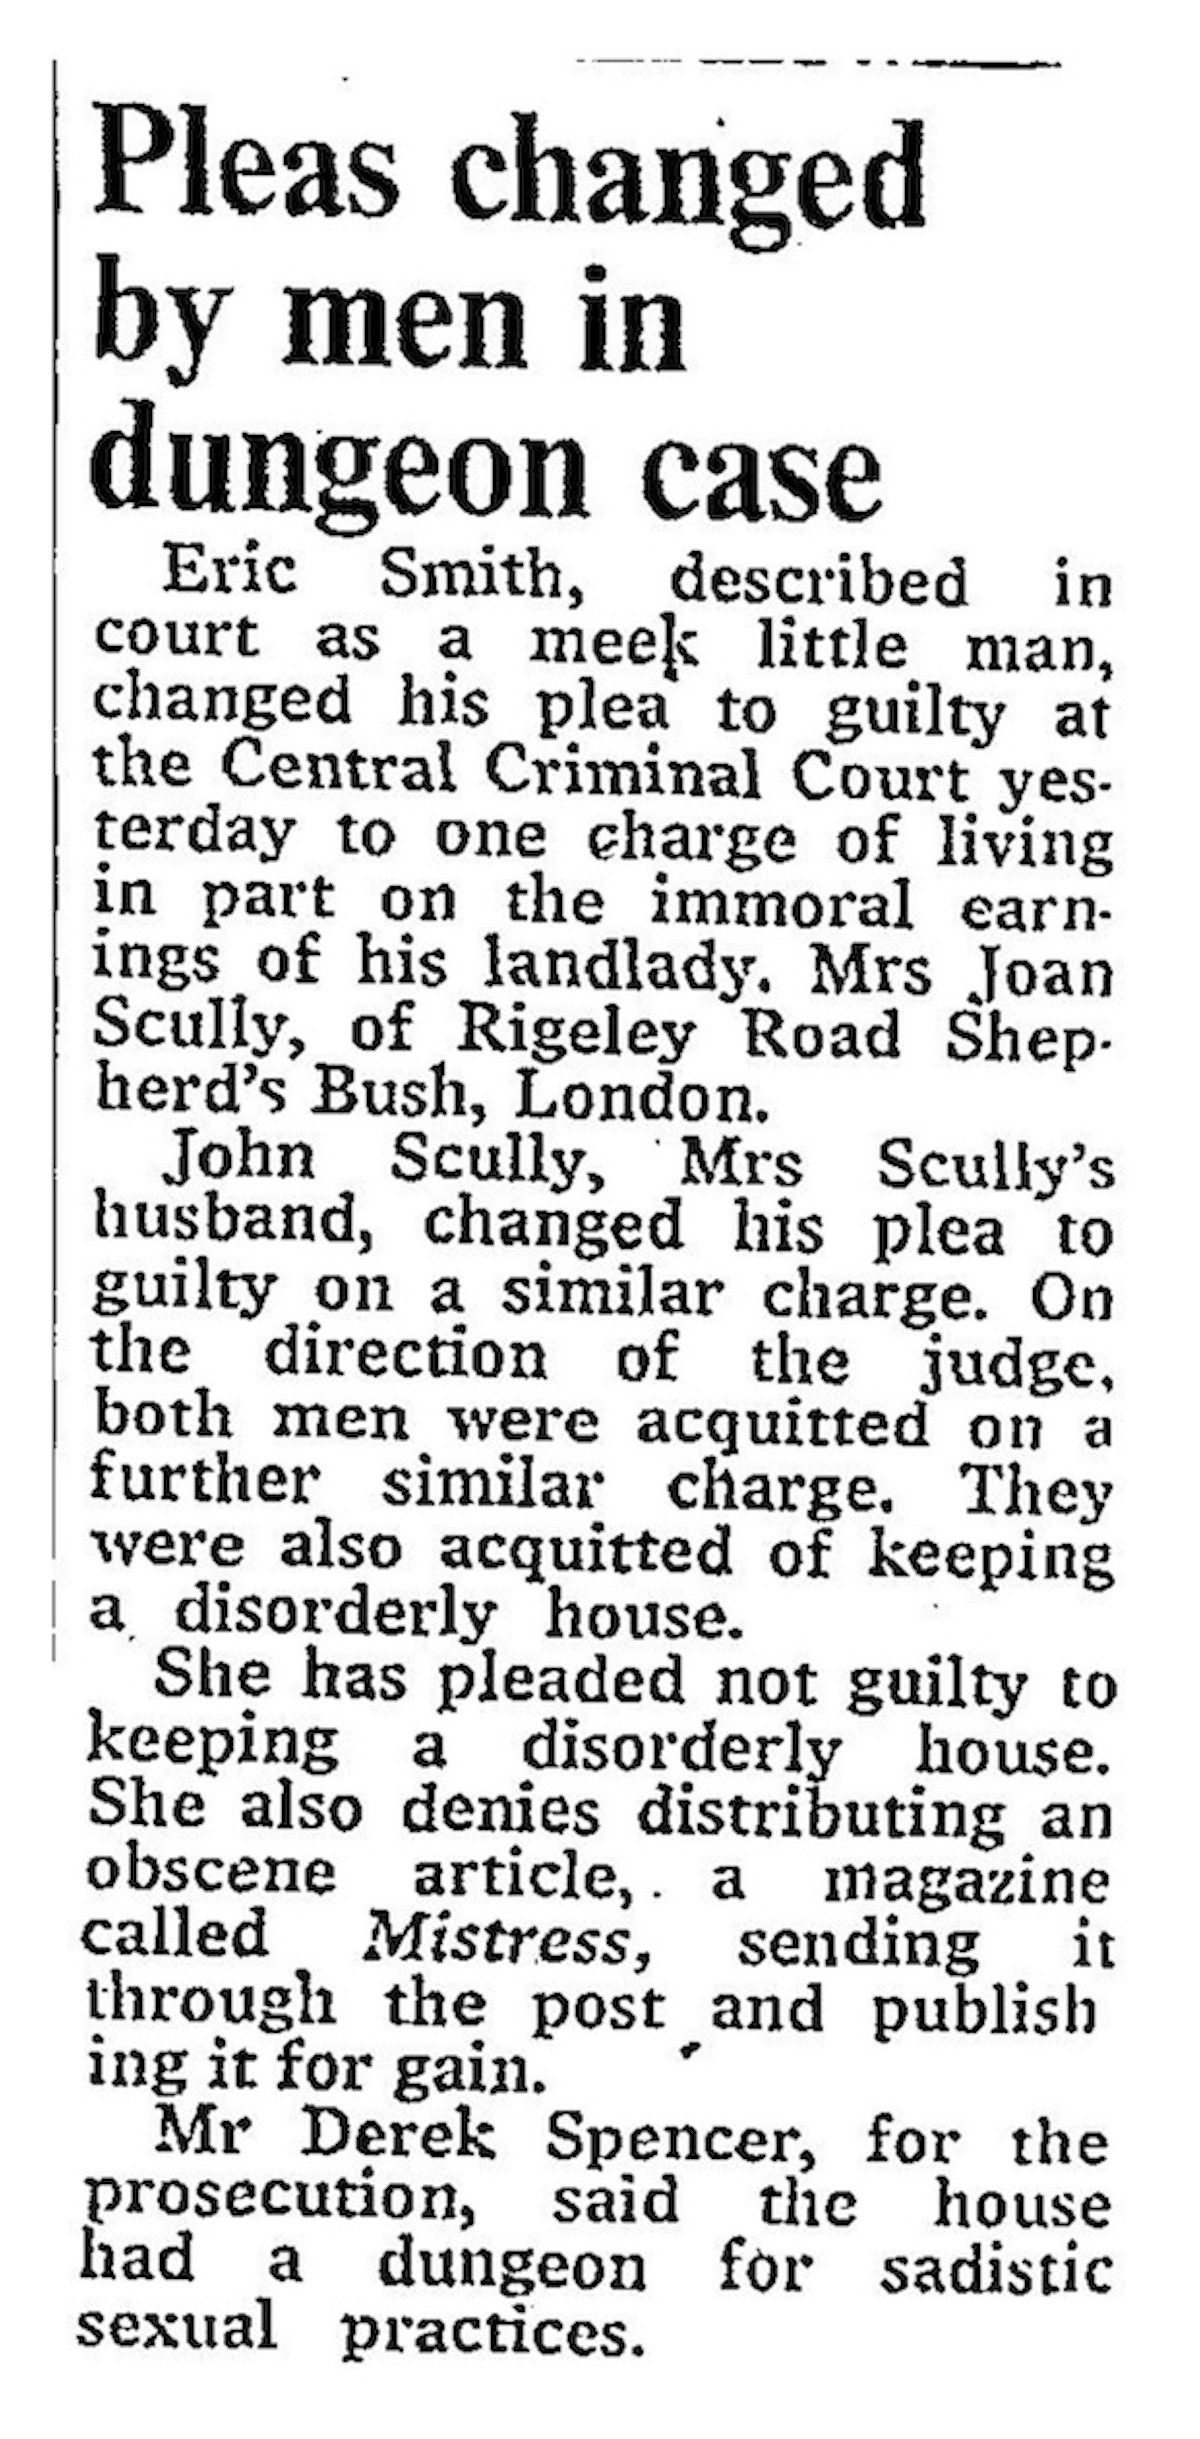 From The Times, September 25, 1974. Courtesy Matthew Worley